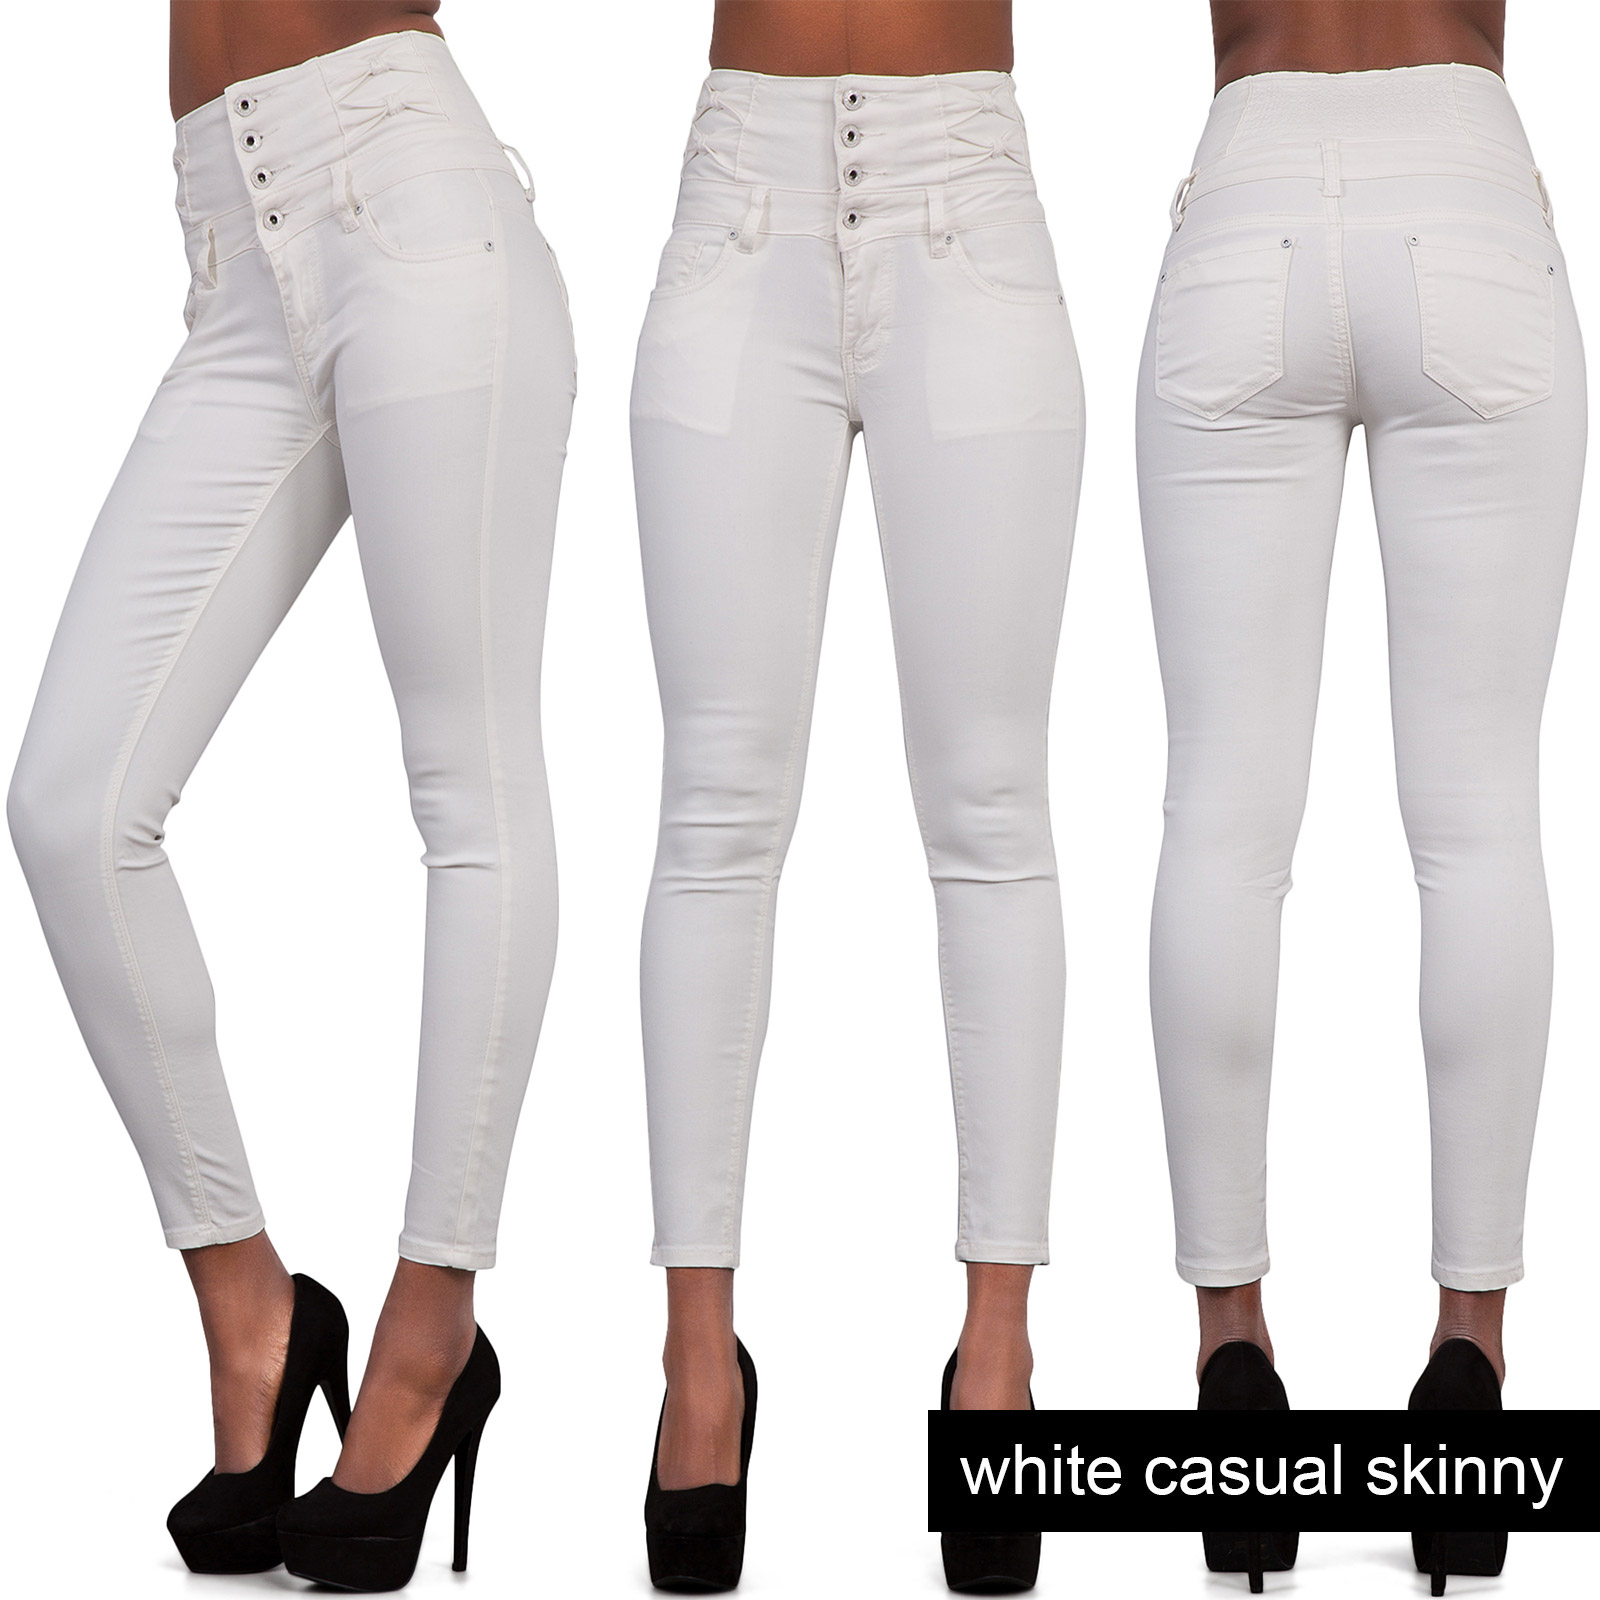 Free shipping & returns on high-waisted jeans for women at rusticzcountrysstylexhomedecor.tk Shop for high waisted jeans by leg style, wash, waist size, and more from top brands. Free shipping and returns.